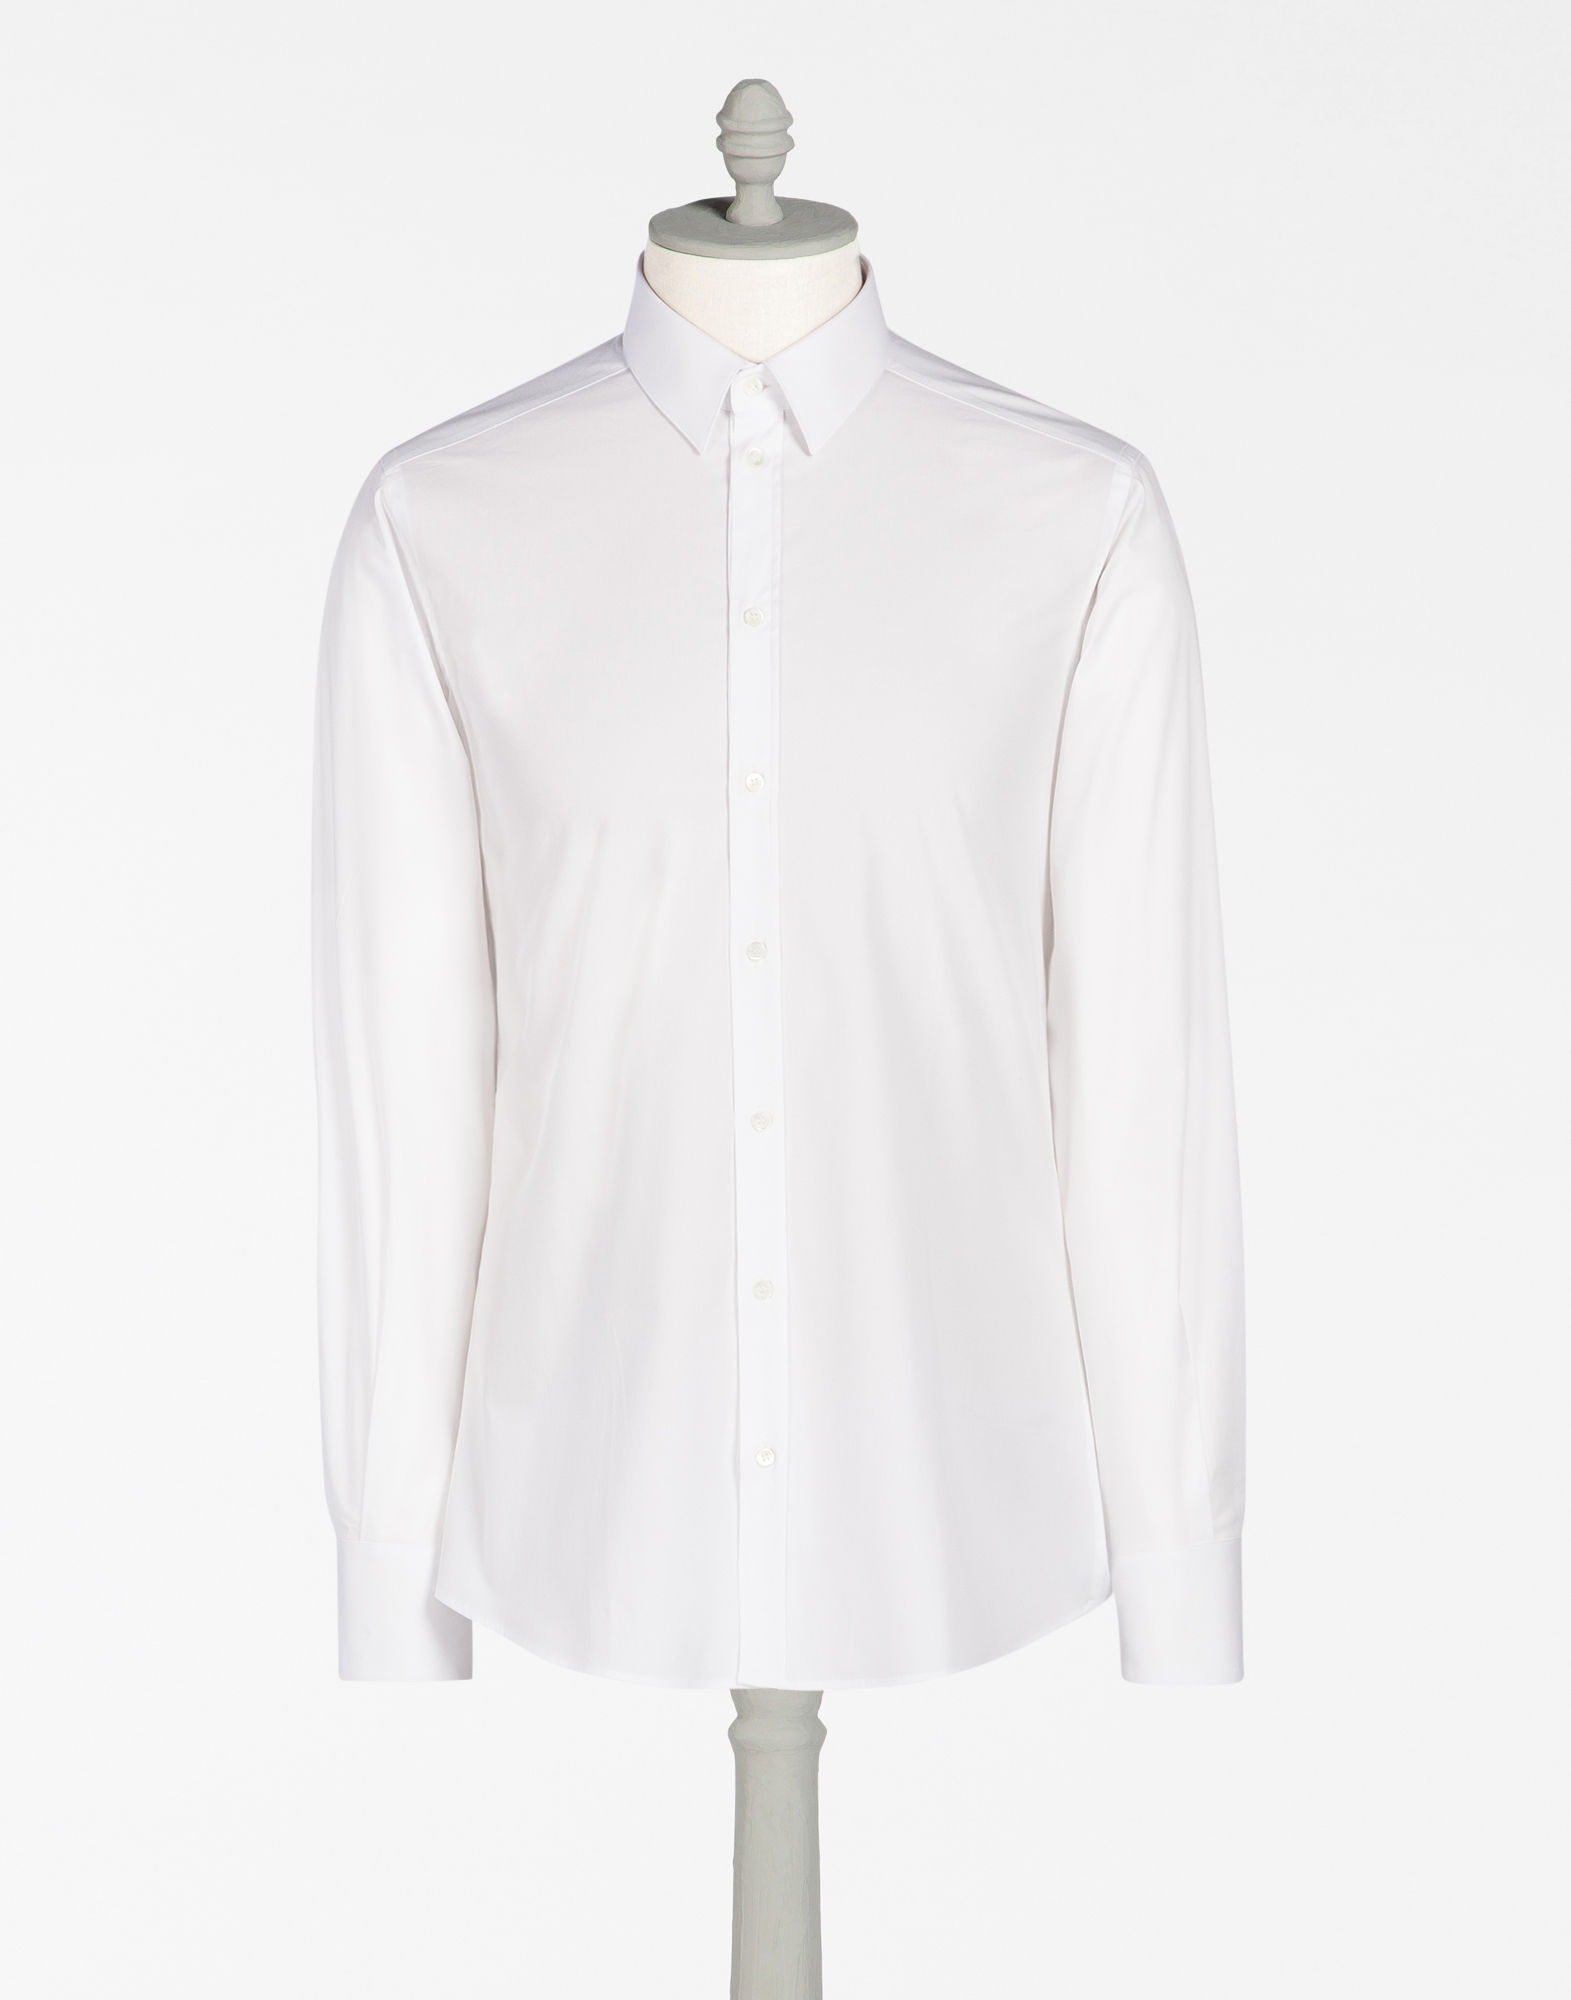 Dolce And Gabbana White Stud Collar Shirt from DOLCE & GABBANA